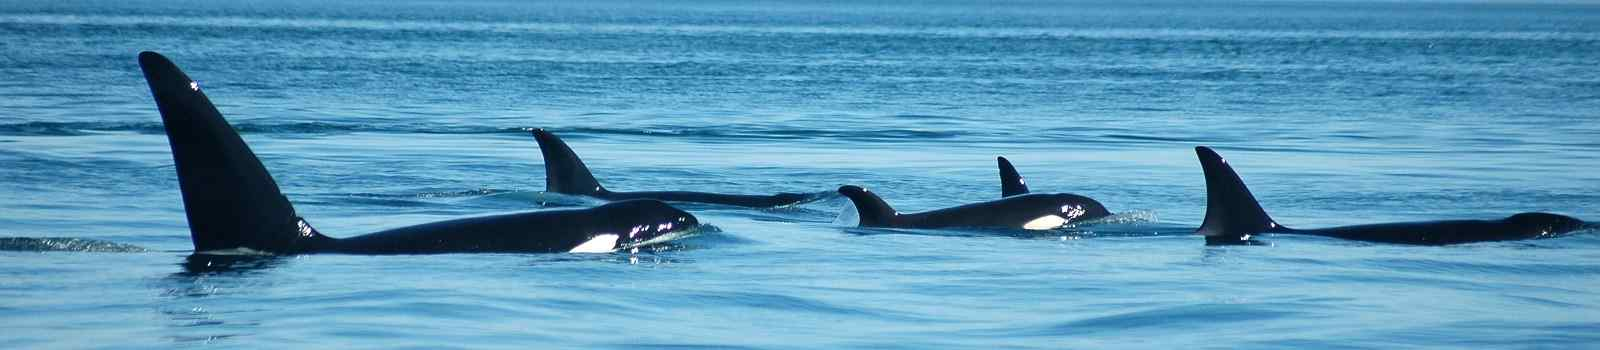 CAD-RM-CPC Kanada Vancouver Island A group of transient (marine mammal feeding) orcas surfaces together, with San Juan Island